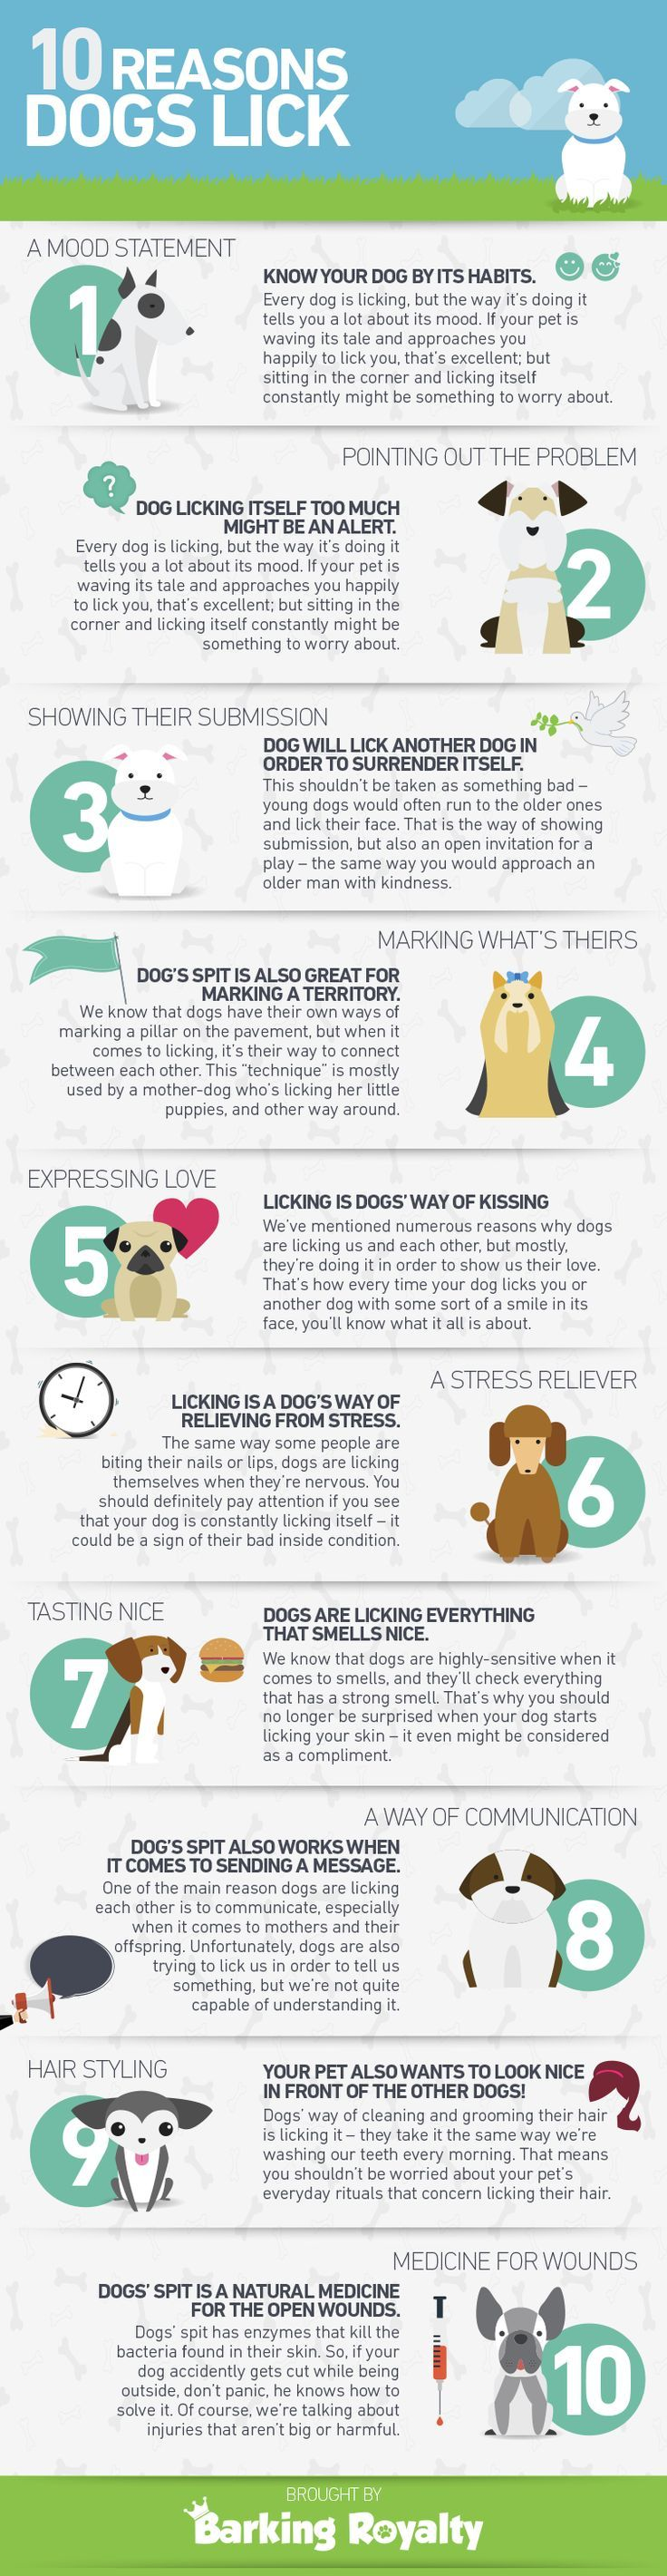 Why do dogs lick? [Infographic] @KaufmannsPuppy